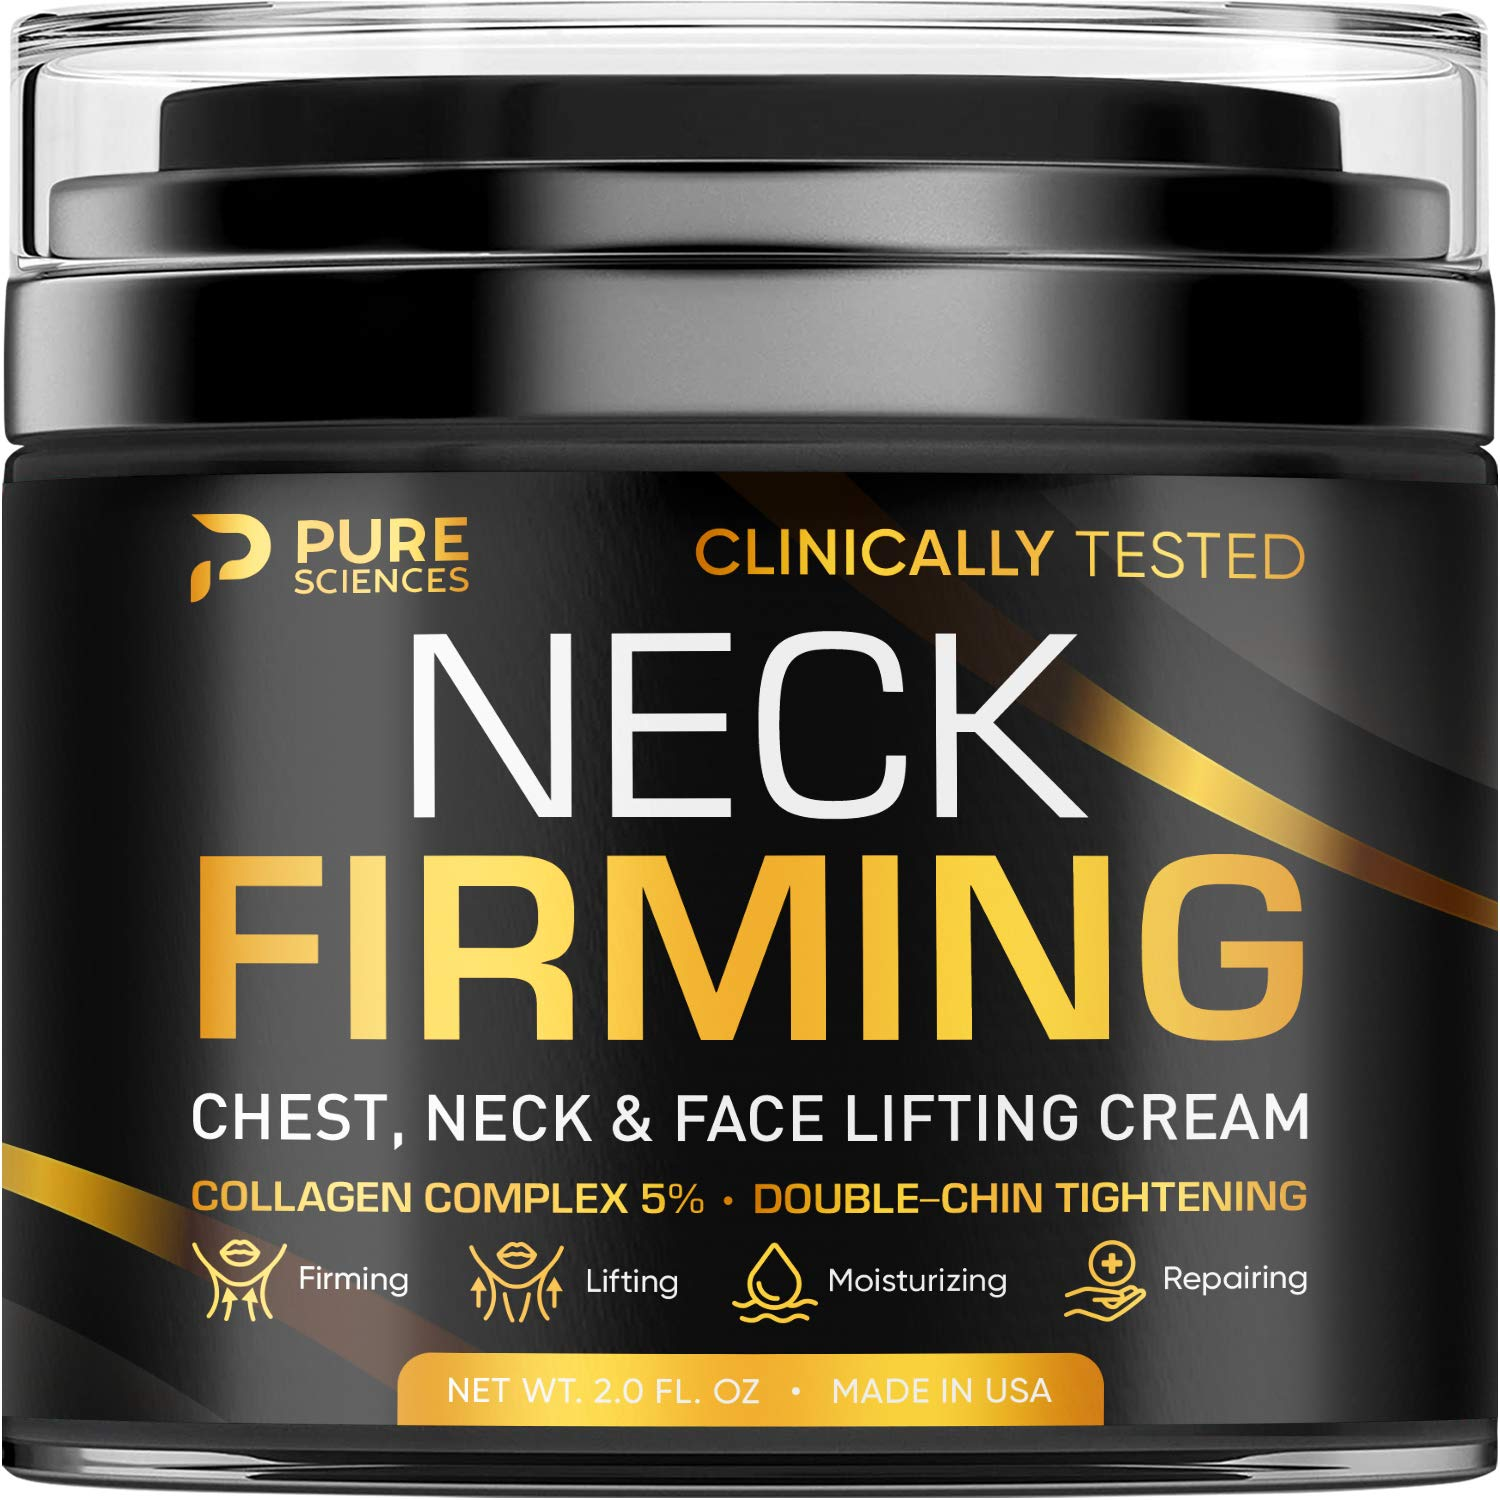 Neck Firming Cream - Anti Wrinkle Cream - Made in USA - Saggy Neck TIghtener & Double Chin Reducer Cream - Collagen & Retinol Skin Tightening Cream - Anti Aging Moisturizer for Neck & Décolleté: Beauty